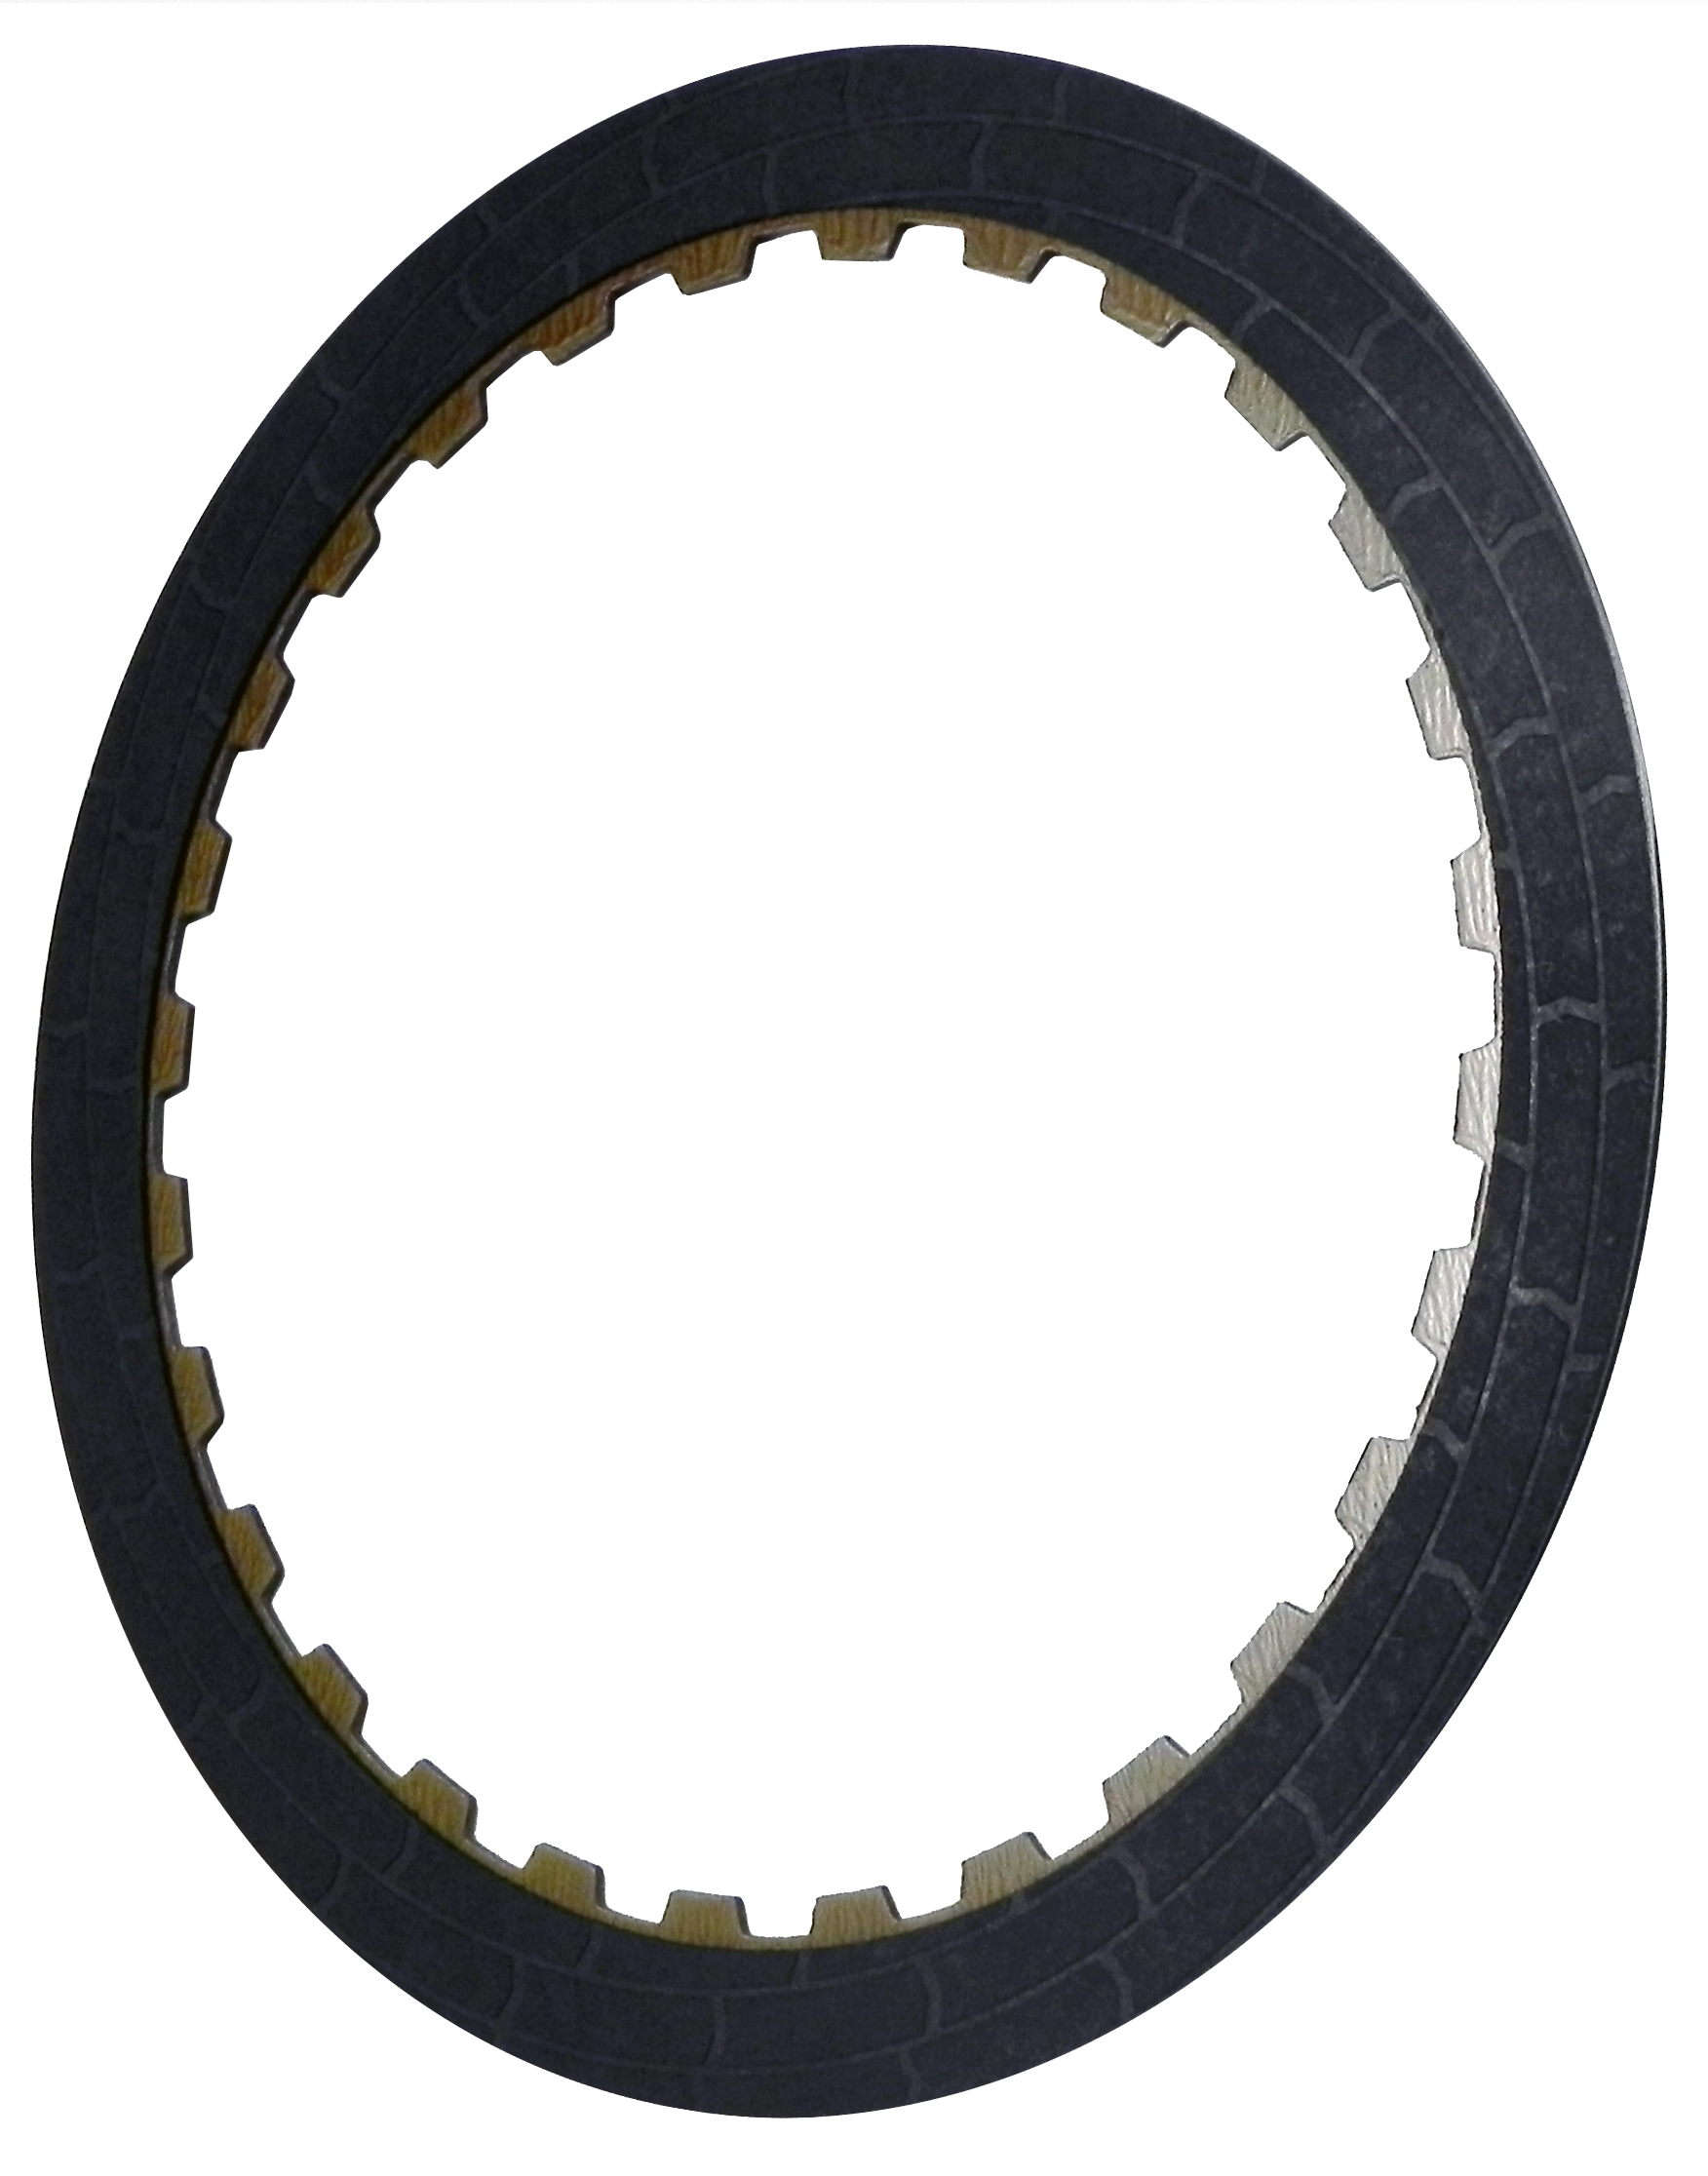 RH558210 | 1993-ON Friction Clutch Plate (HT) Hybrid Technology Underdrive, Overdrive, Reverse Proprietary High Energy (HT)